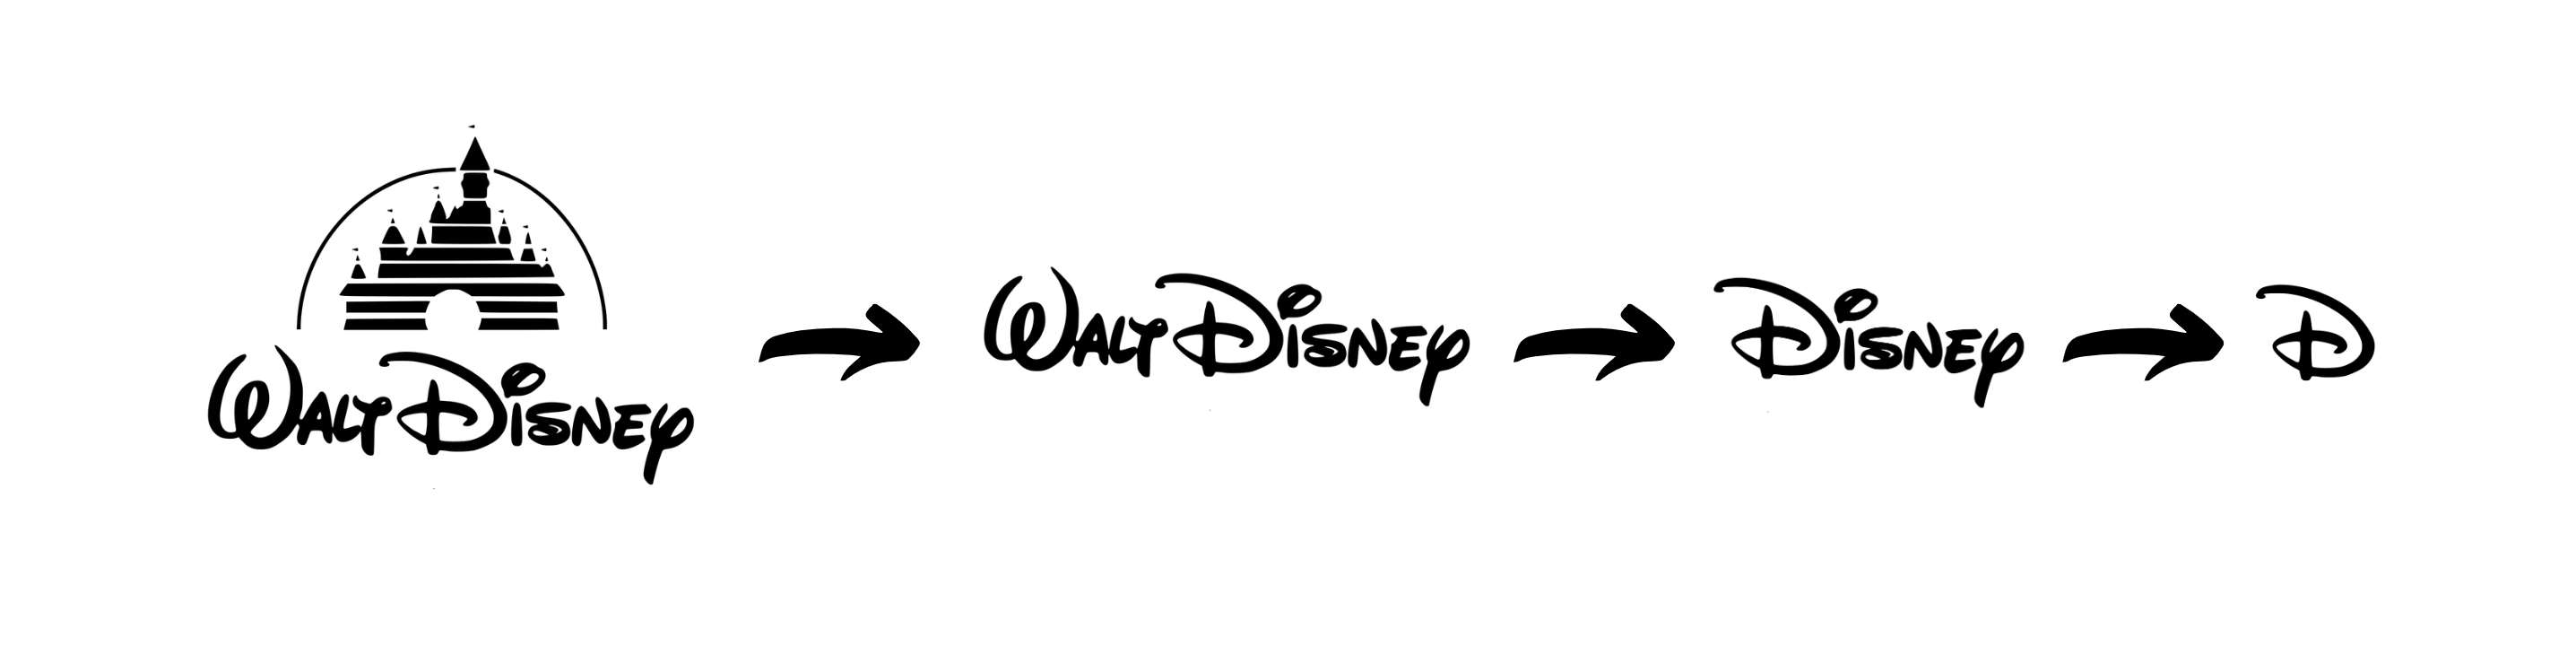 Walt Disney logo evolution.